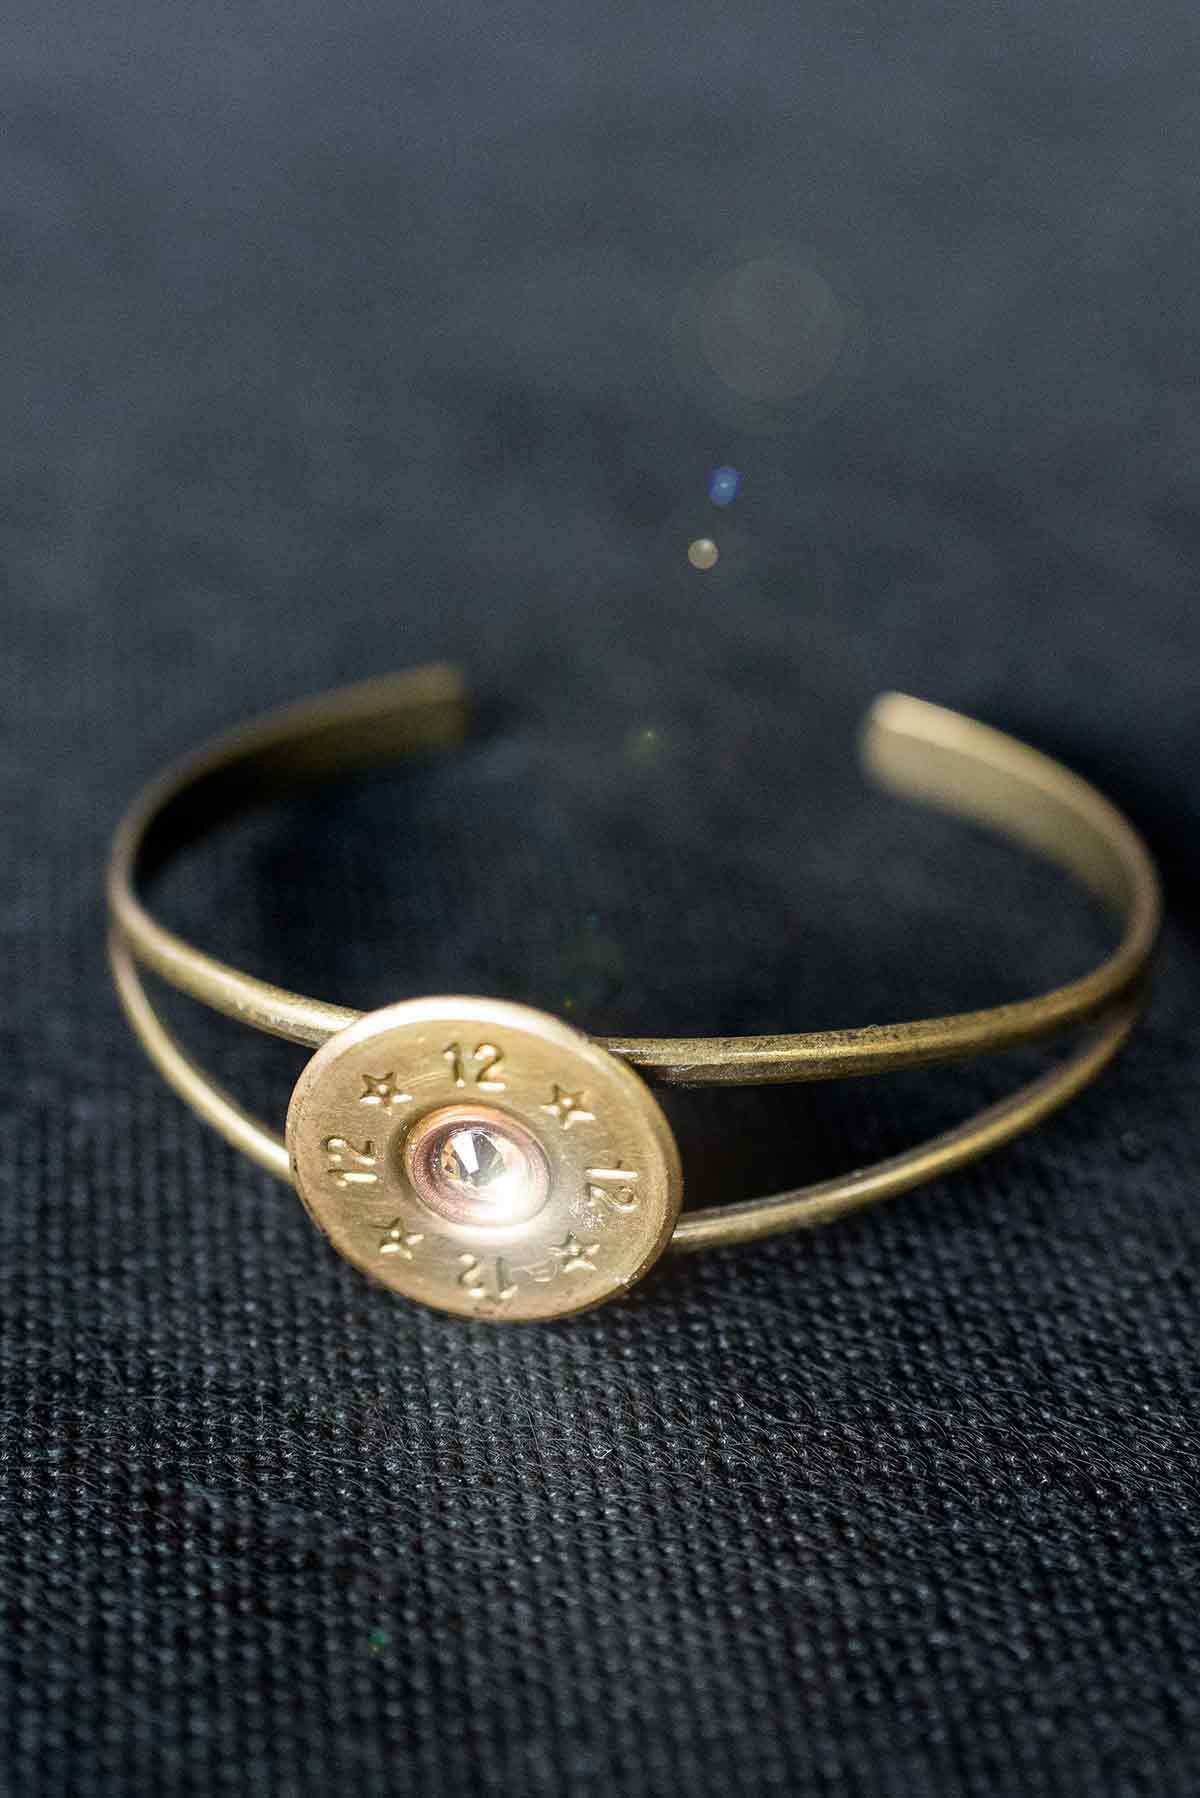 .12-Gauge Shotgun Open Bangle Bracelet